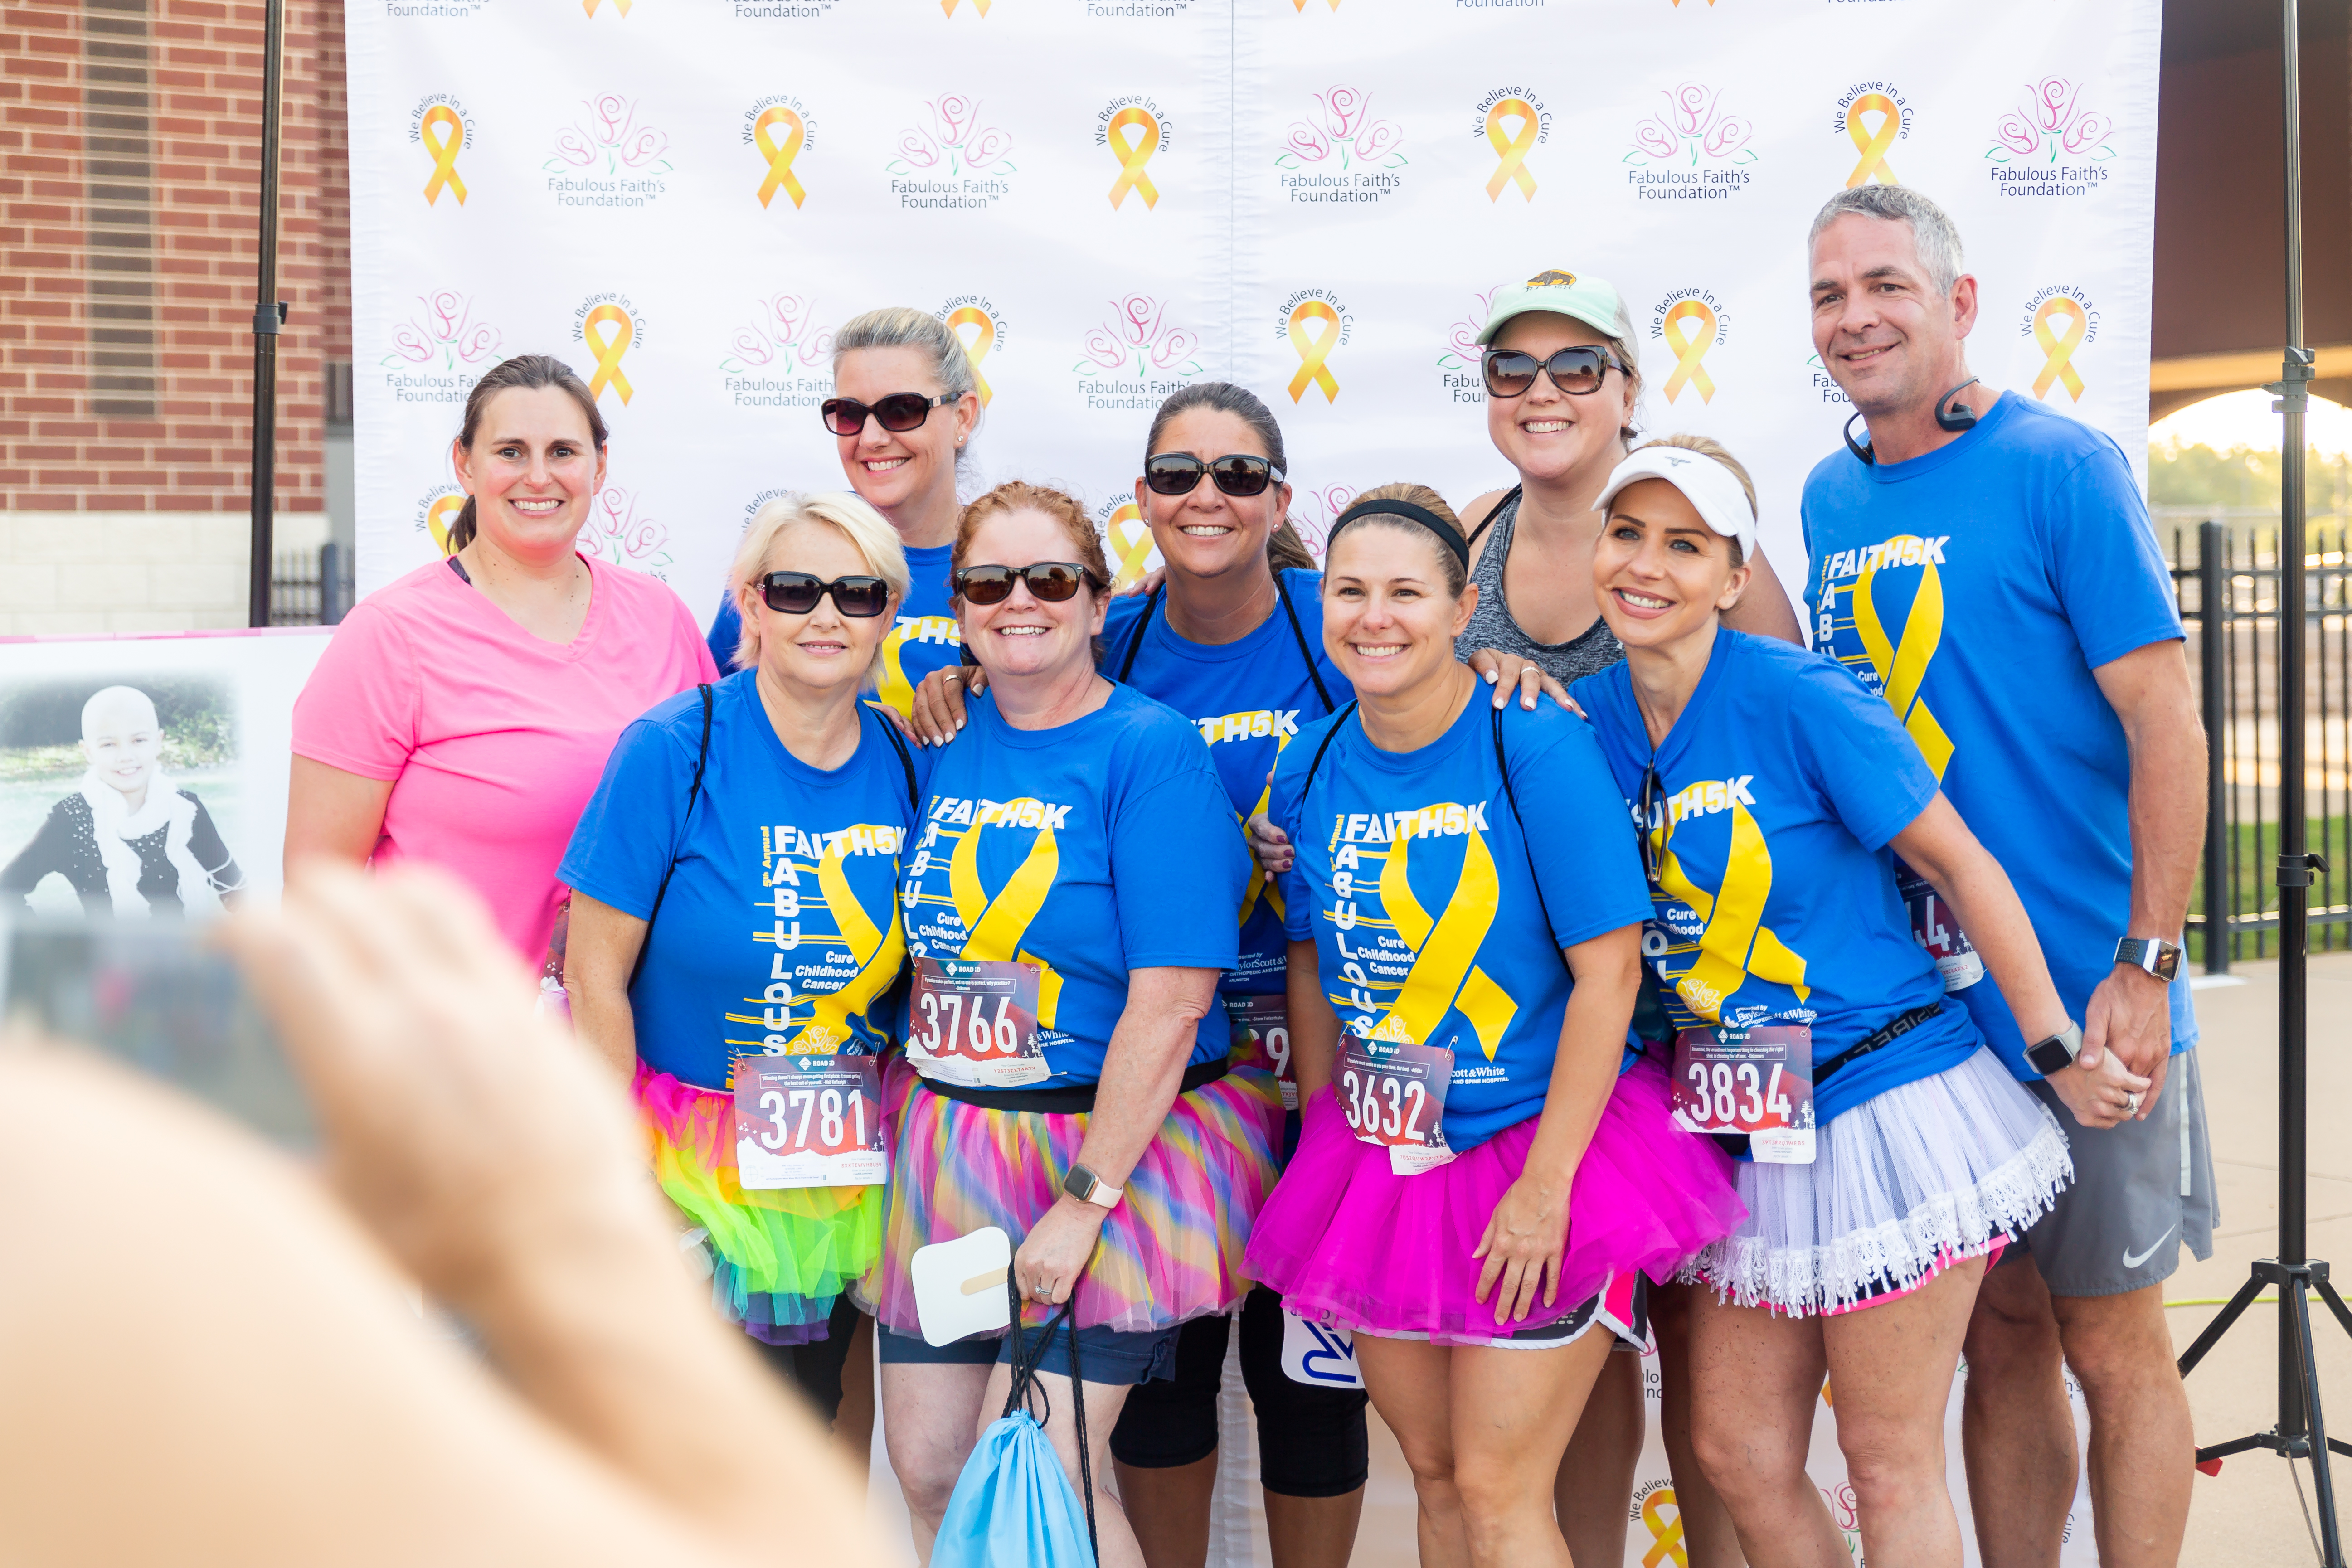 Fabulous Faith's Foundation is a local non-profit with the goal of funding cancer research in the hopes of ending pediatric cancer